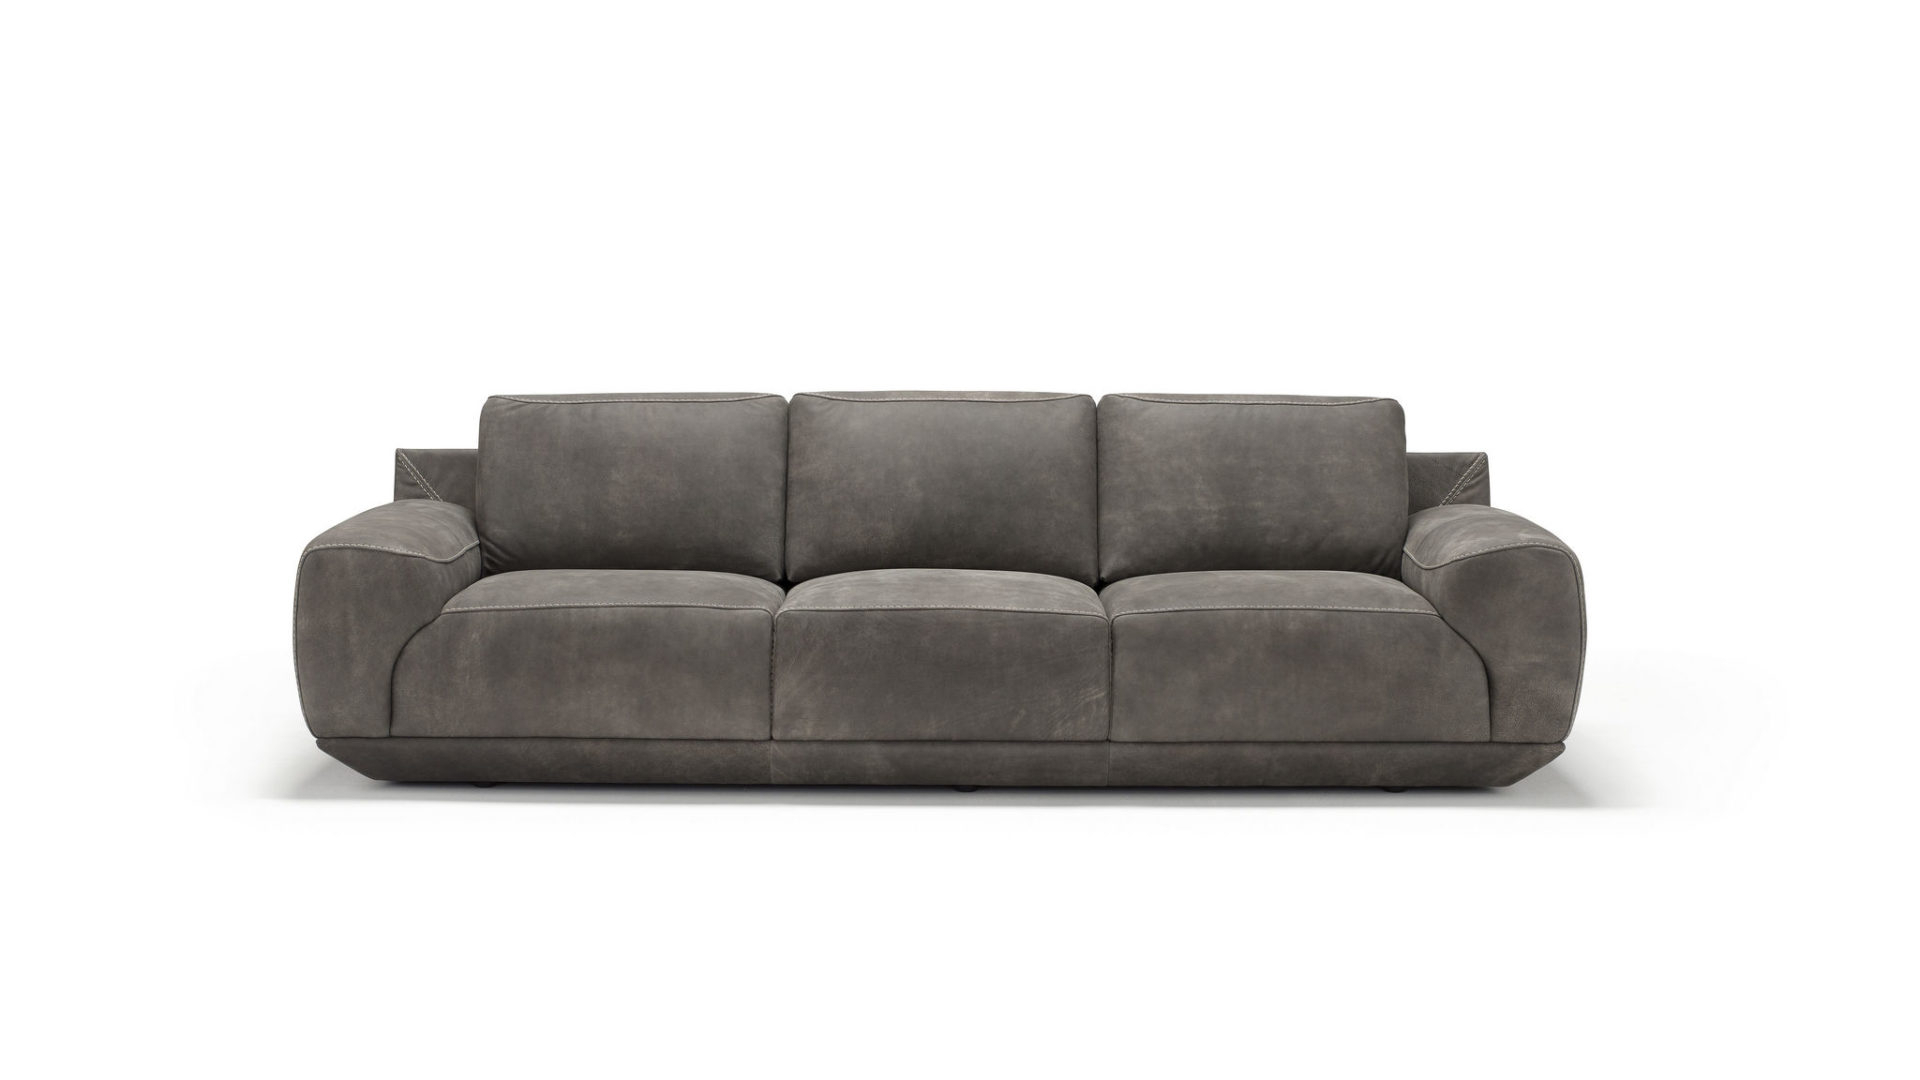 Sofas & Sectionals – Braccisofas Pertaining To Trendy Glamour Ii 3 Piece Sectionals (View 15 of 20)